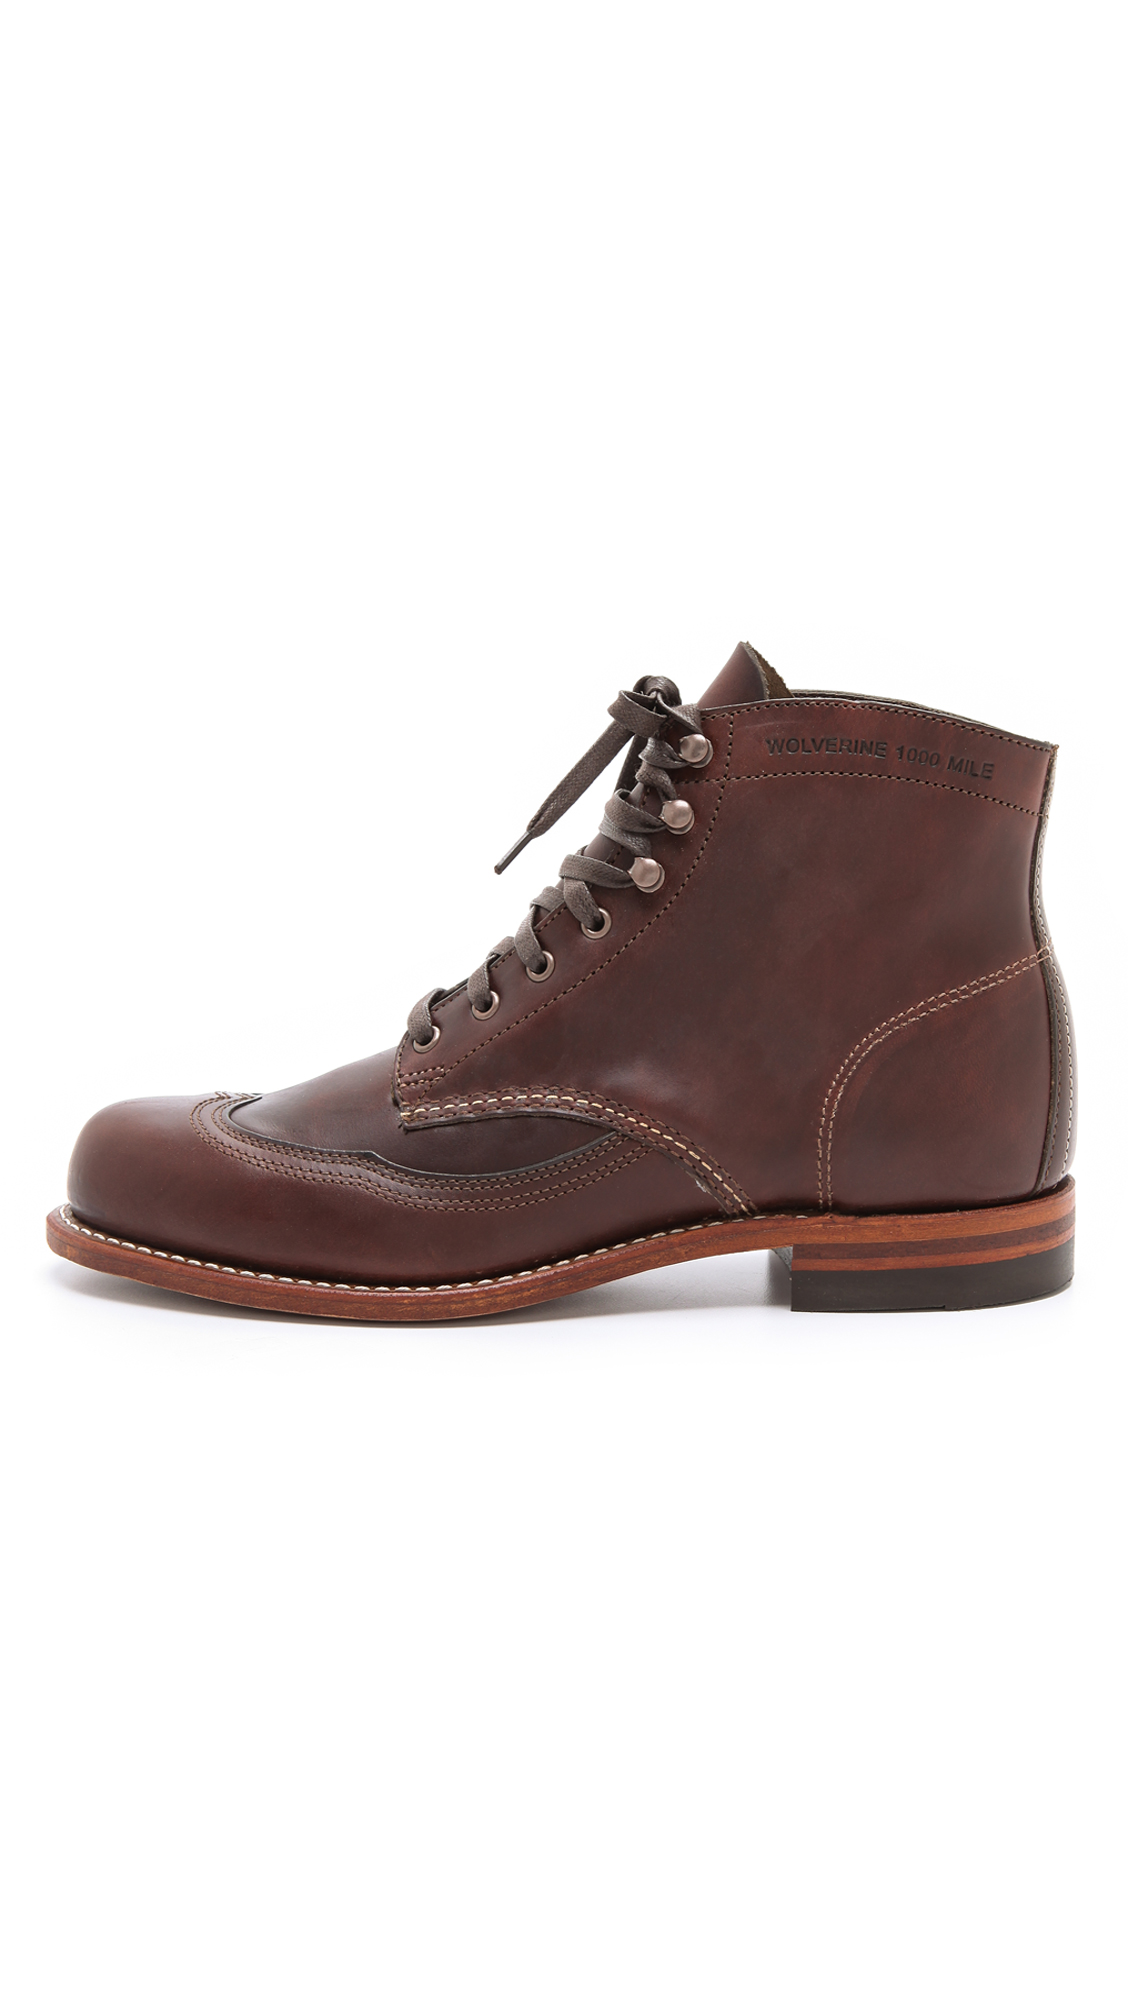 Lyst Wolverine Addison 1000 Mile Wingtip Boots In Brown